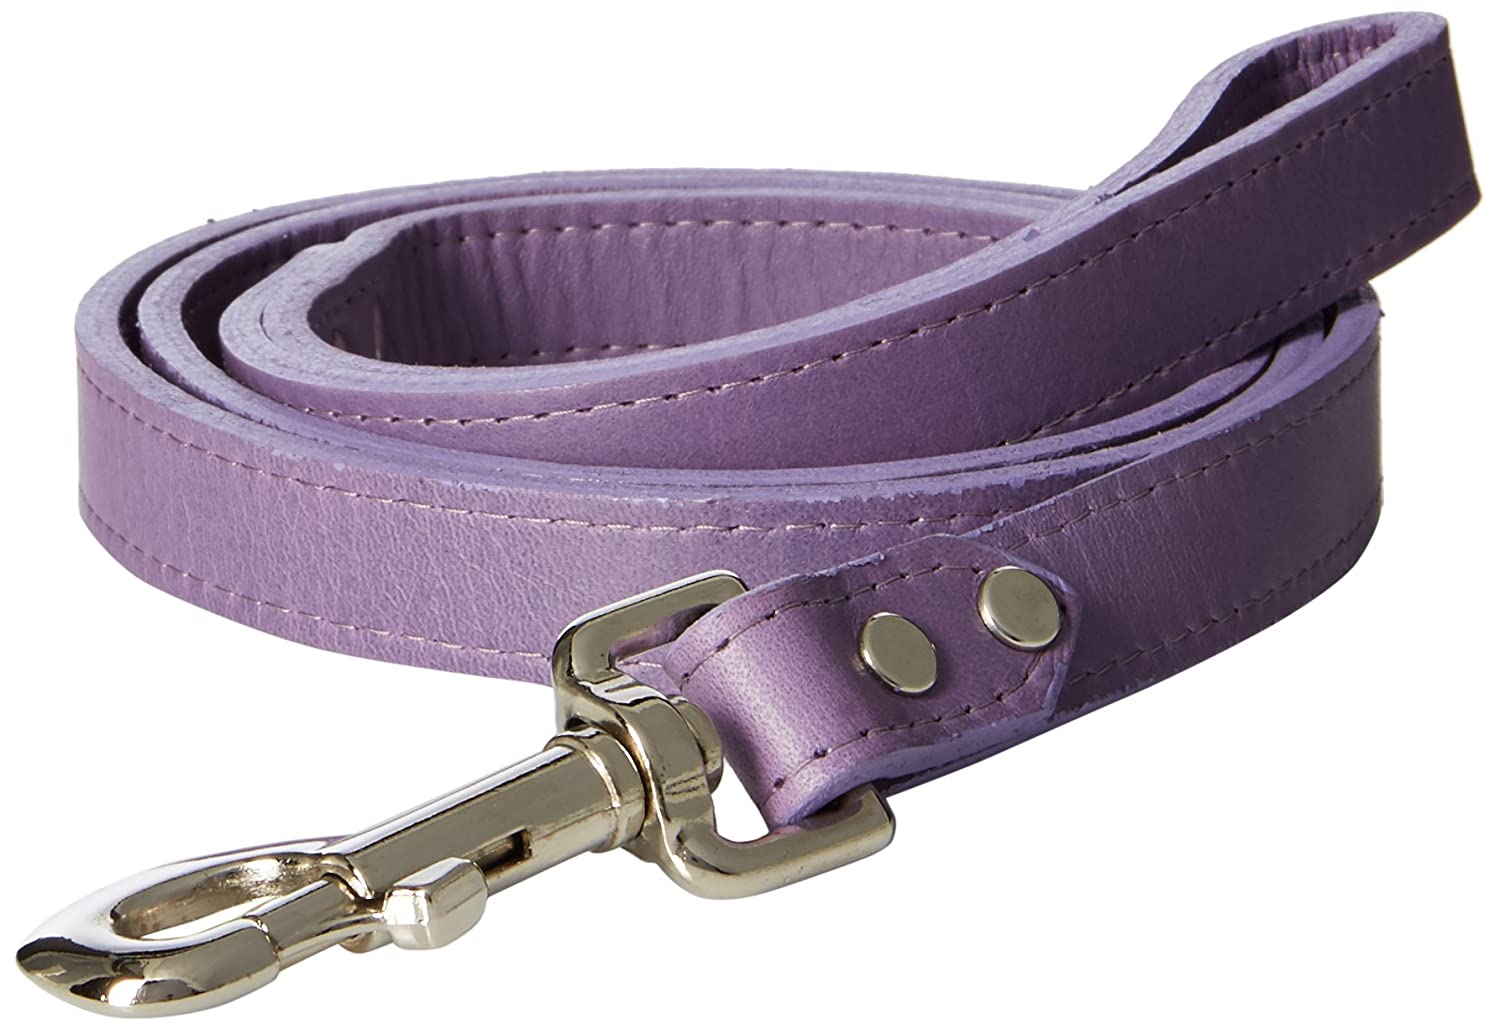 OmniPet 6075-LV Signature Leather Dog Leash, Lavender, 3 4  x 4'